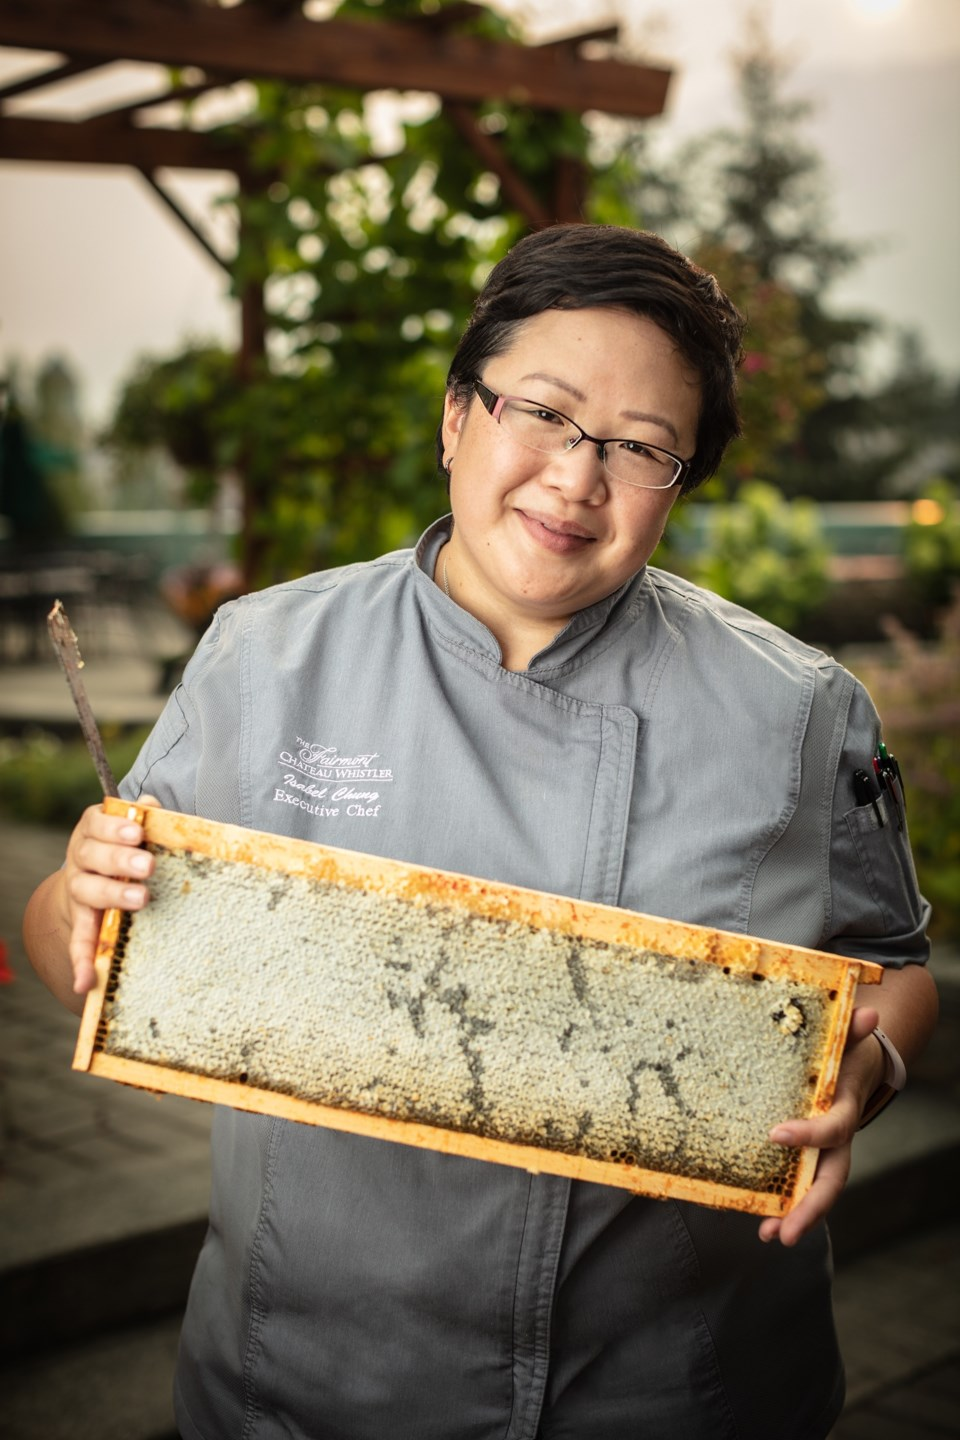 o-epicurious_chef_isabel_bee_hives_kevinclark_2623_courtesy_